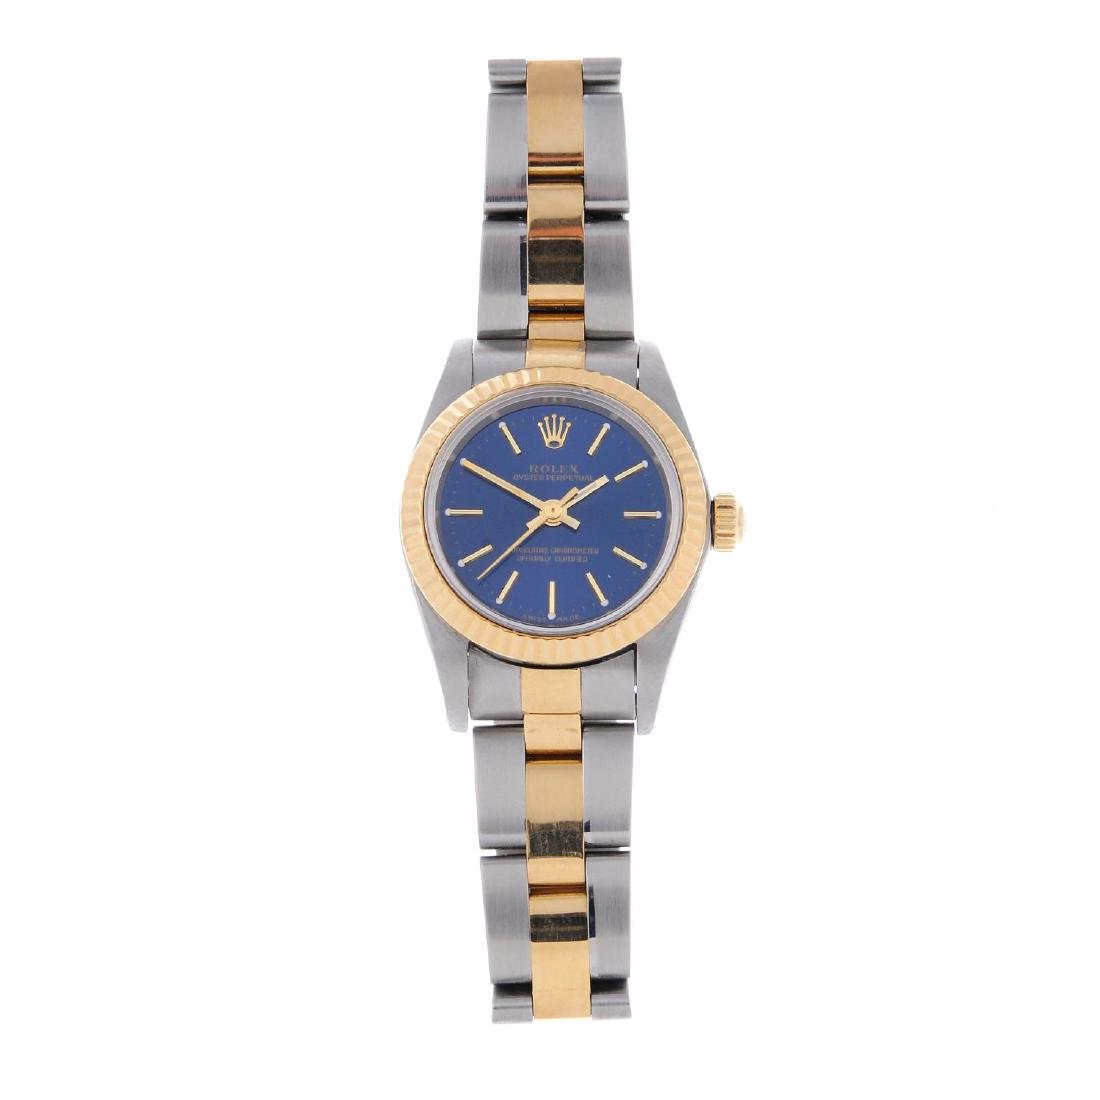 ROLEX - a lady's Oyster Perpetual bracelet watch. Circa